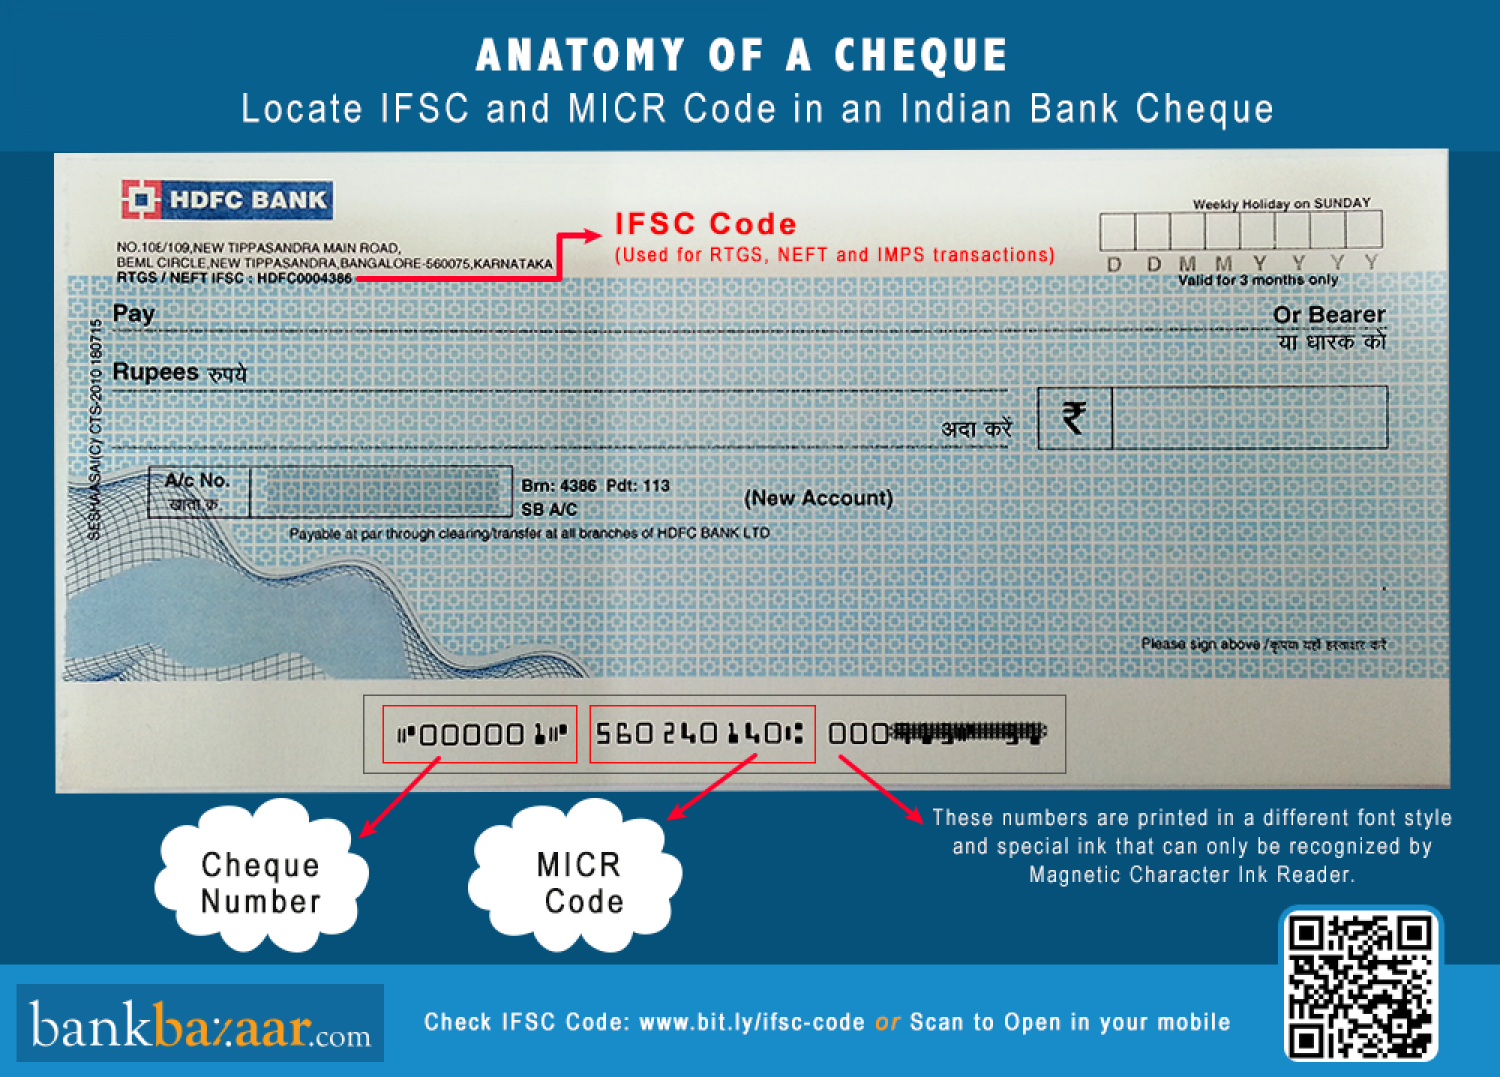 Anatomy Of A Cheque Locate Ifsc Micr Codes And Number In An Indian